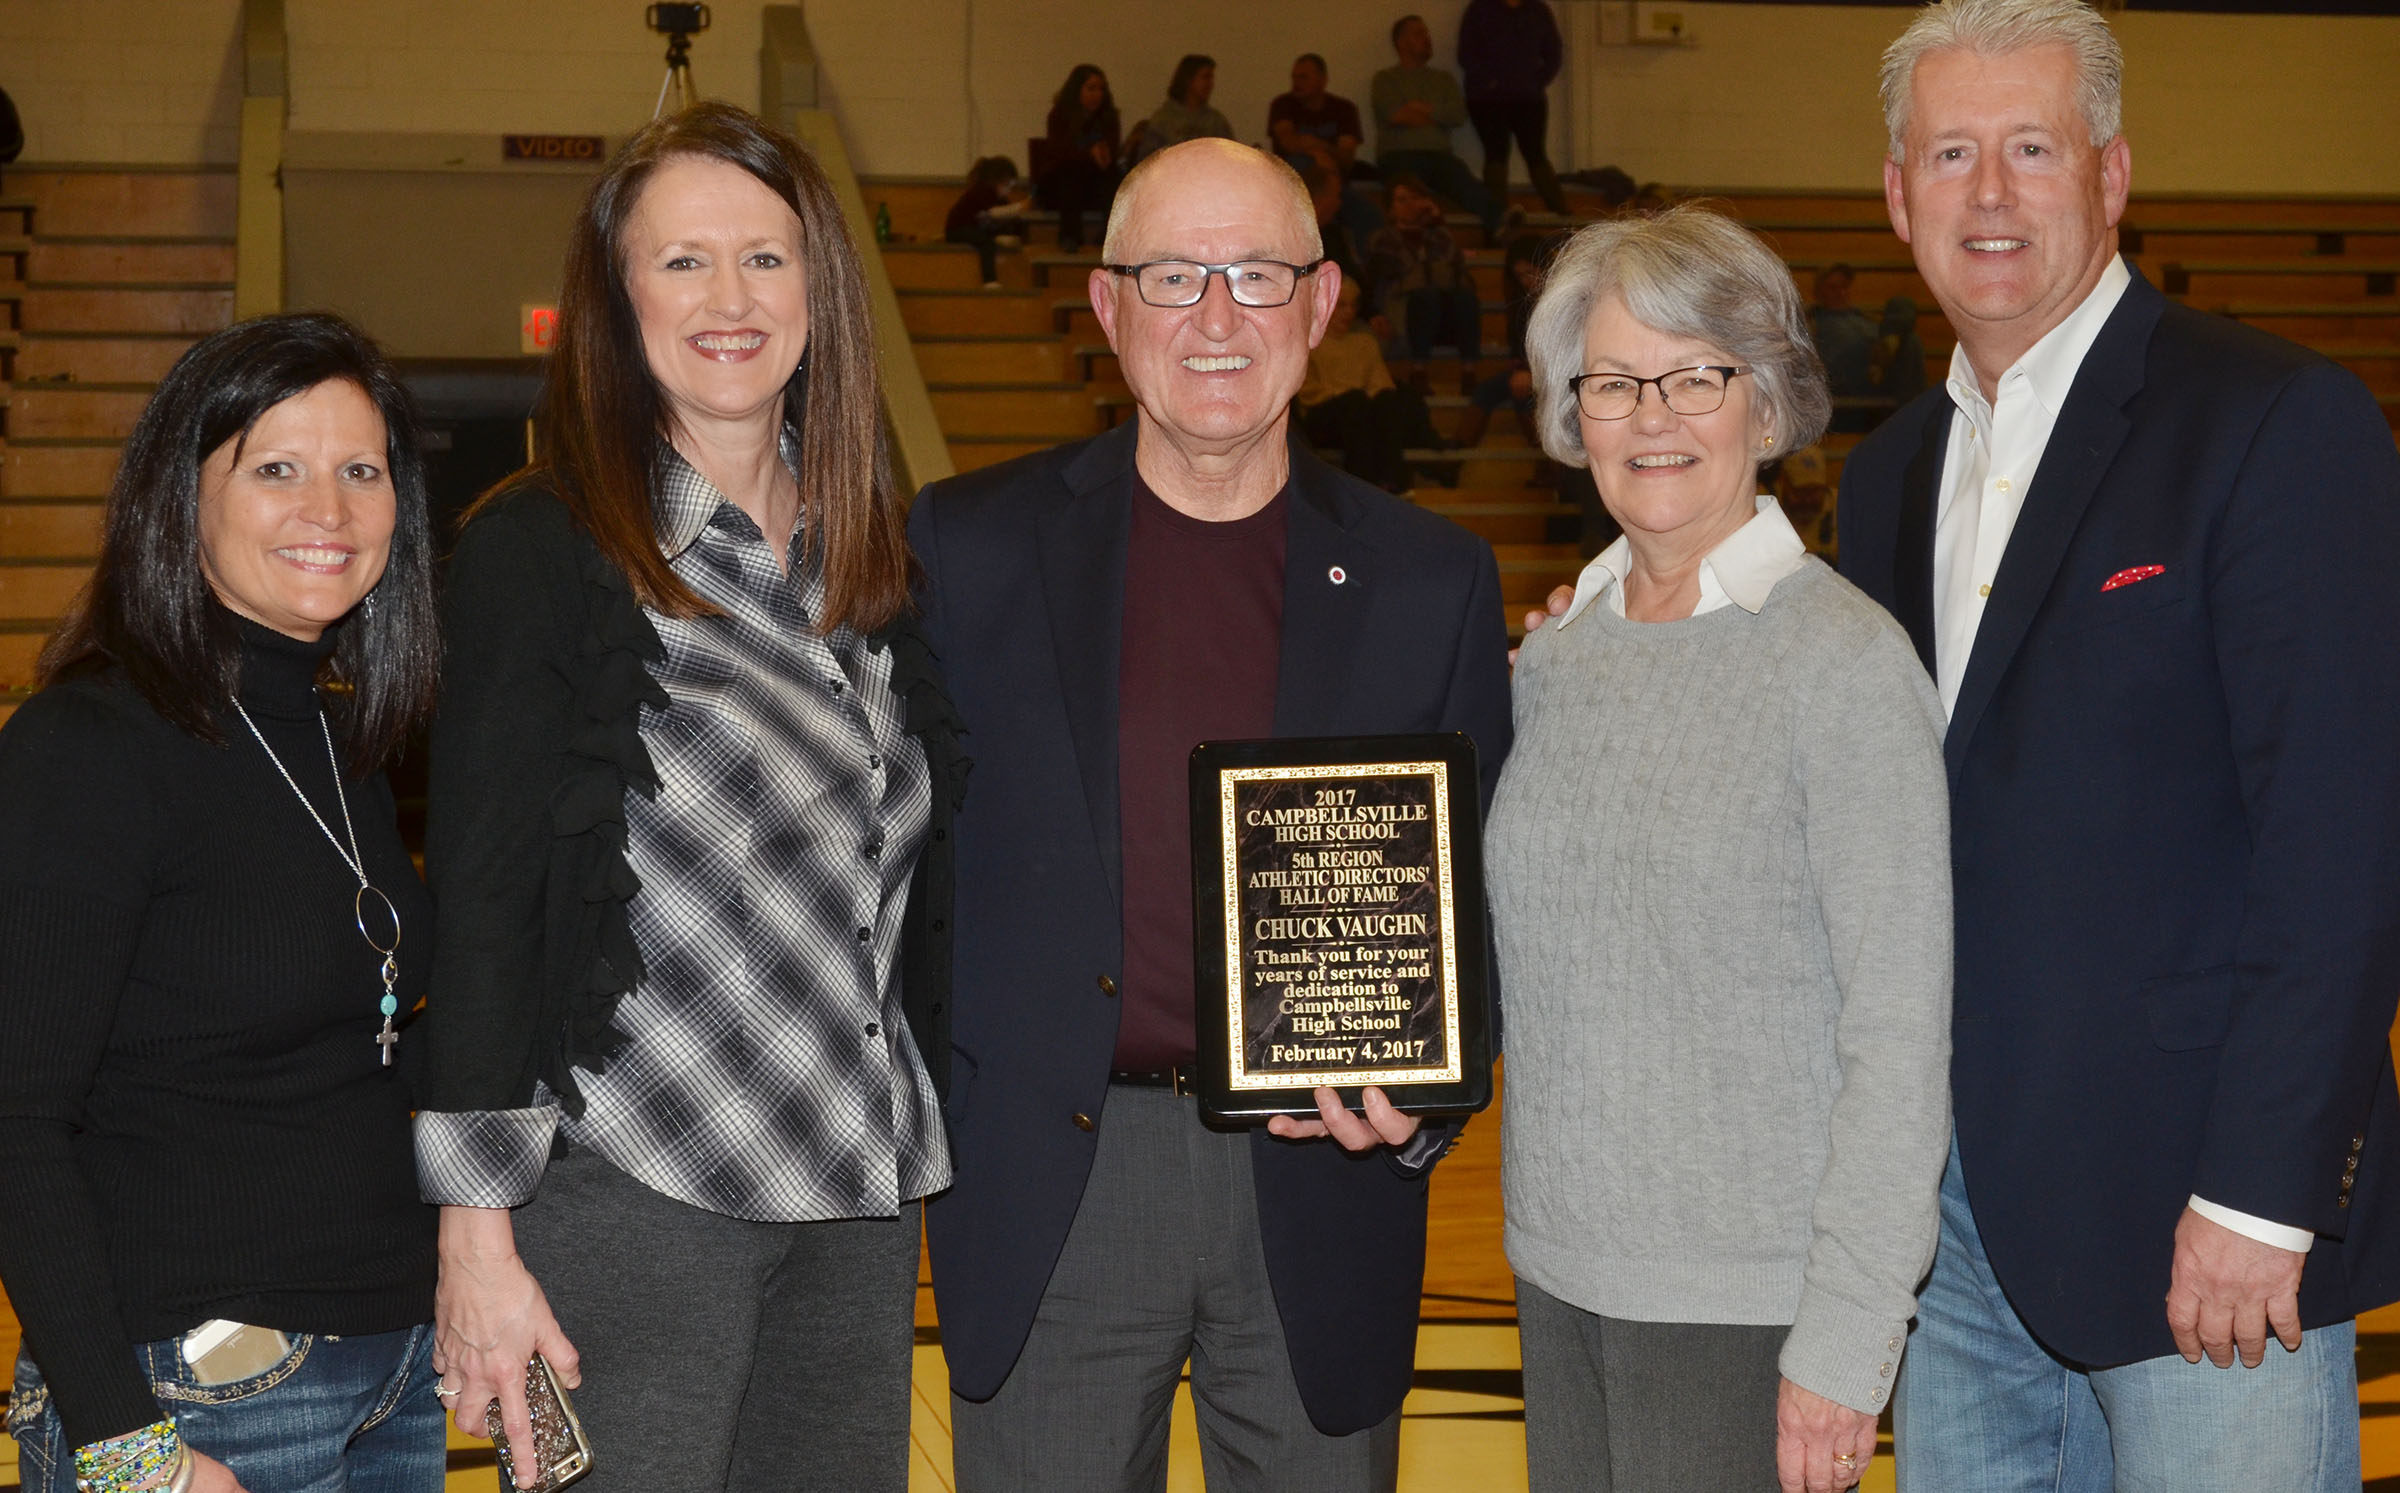 Chuck Vaughn, former Campbellsville Independent Schools superintendent, was inducted into the 5th Region Athletic Director's Hall of Fame on Saturday, Feb. 4. He was honored during the CHS boys' basketball game versus Metcalfe County. From left are his sister-in-law June Vaughn, his sister Karen Hayes, Vaughn, his wife Karen and his brother Denny Vaughn.